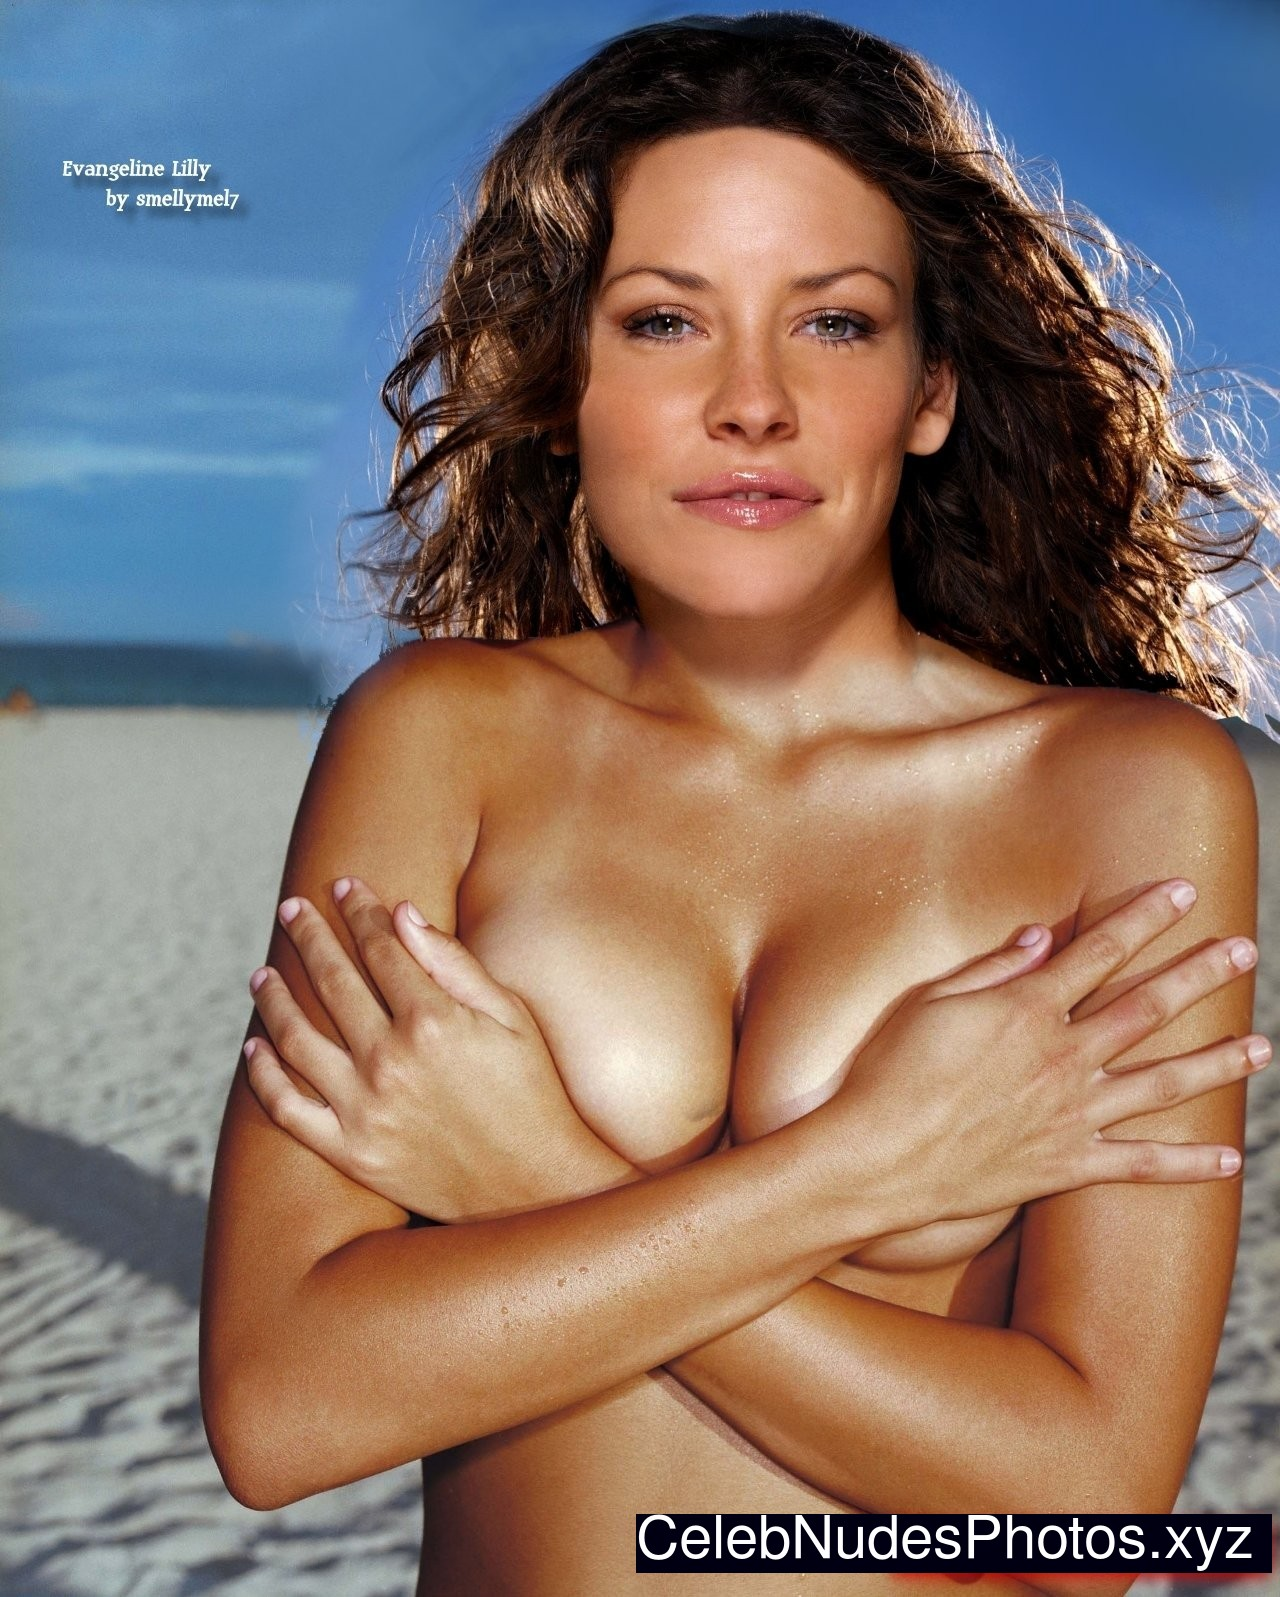 Evangeline Lilly nude celebrities